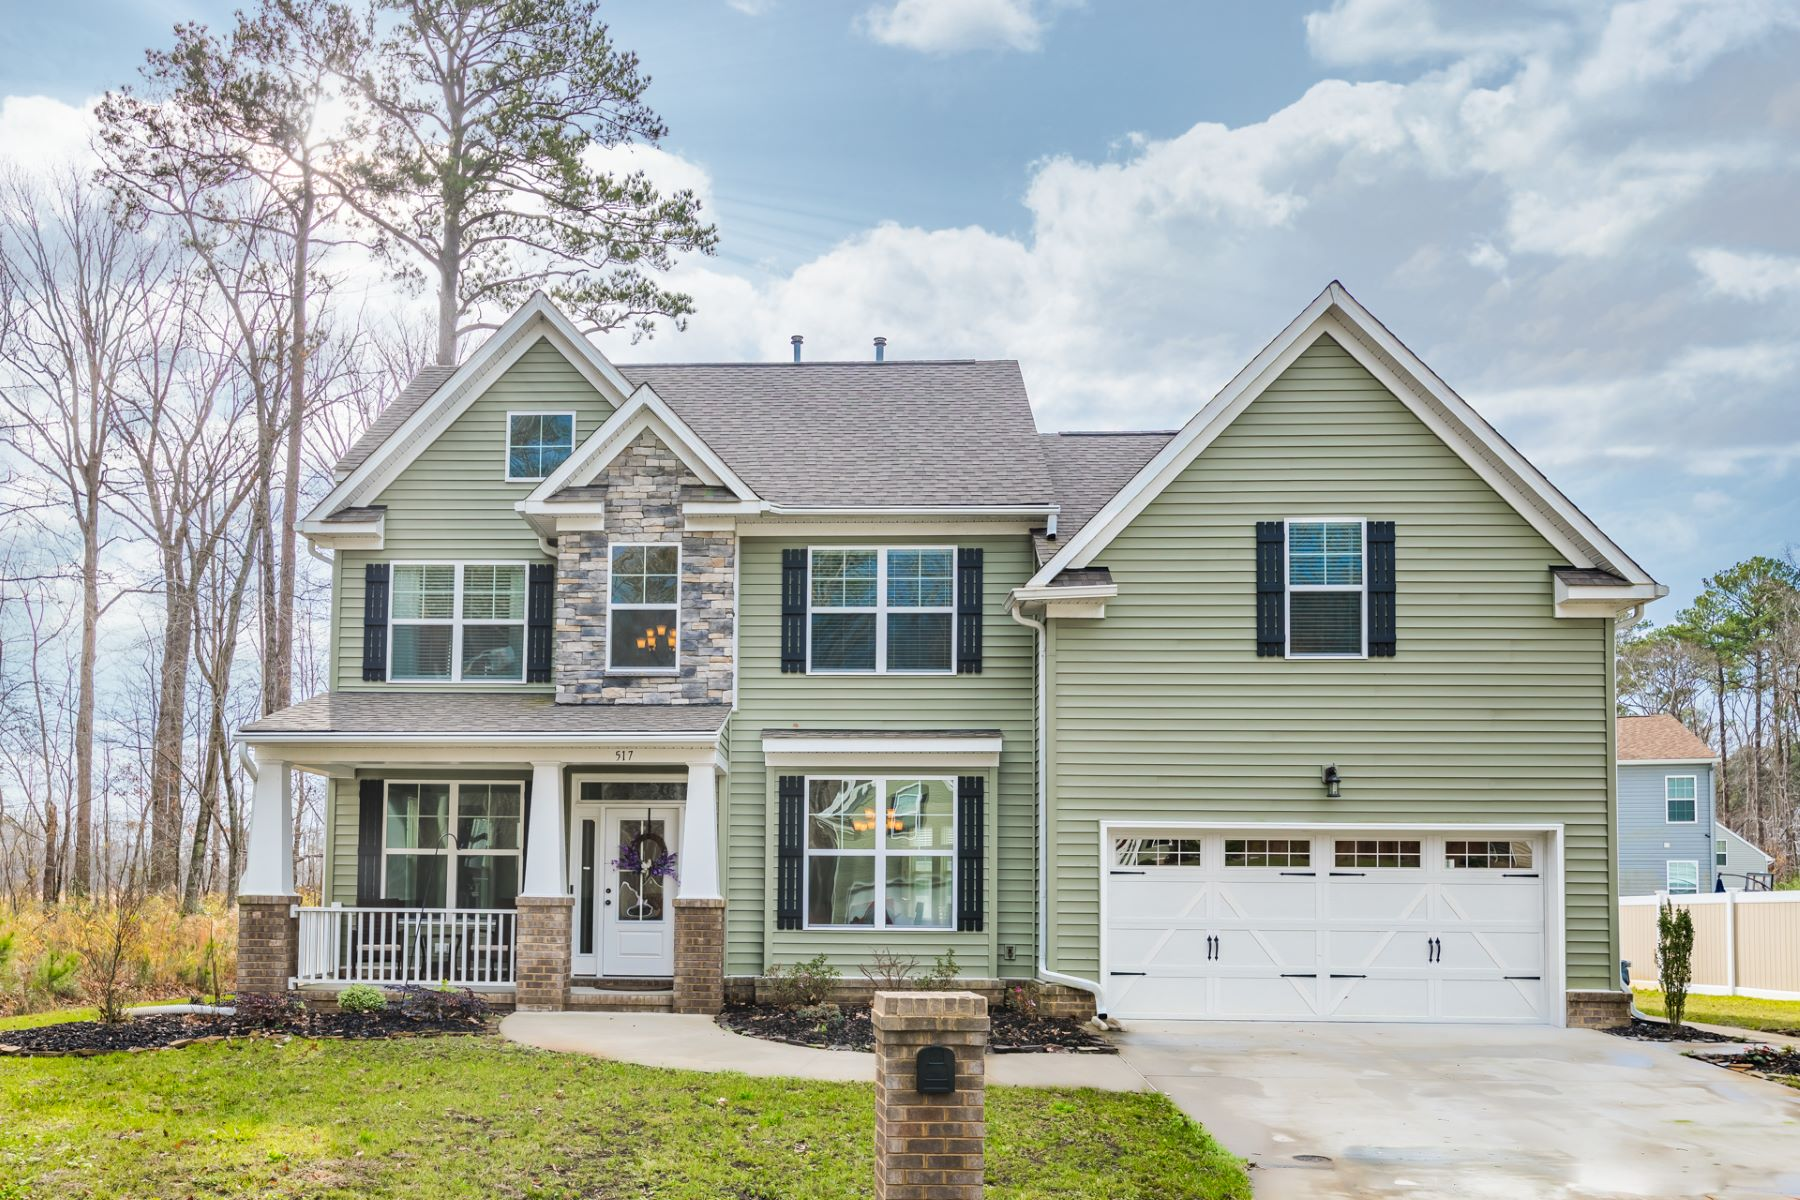 Single Family Homes for Active at ALBEMARLE RIVER 517 Taryn Ct Chesapeake, Virginia 23320 United States